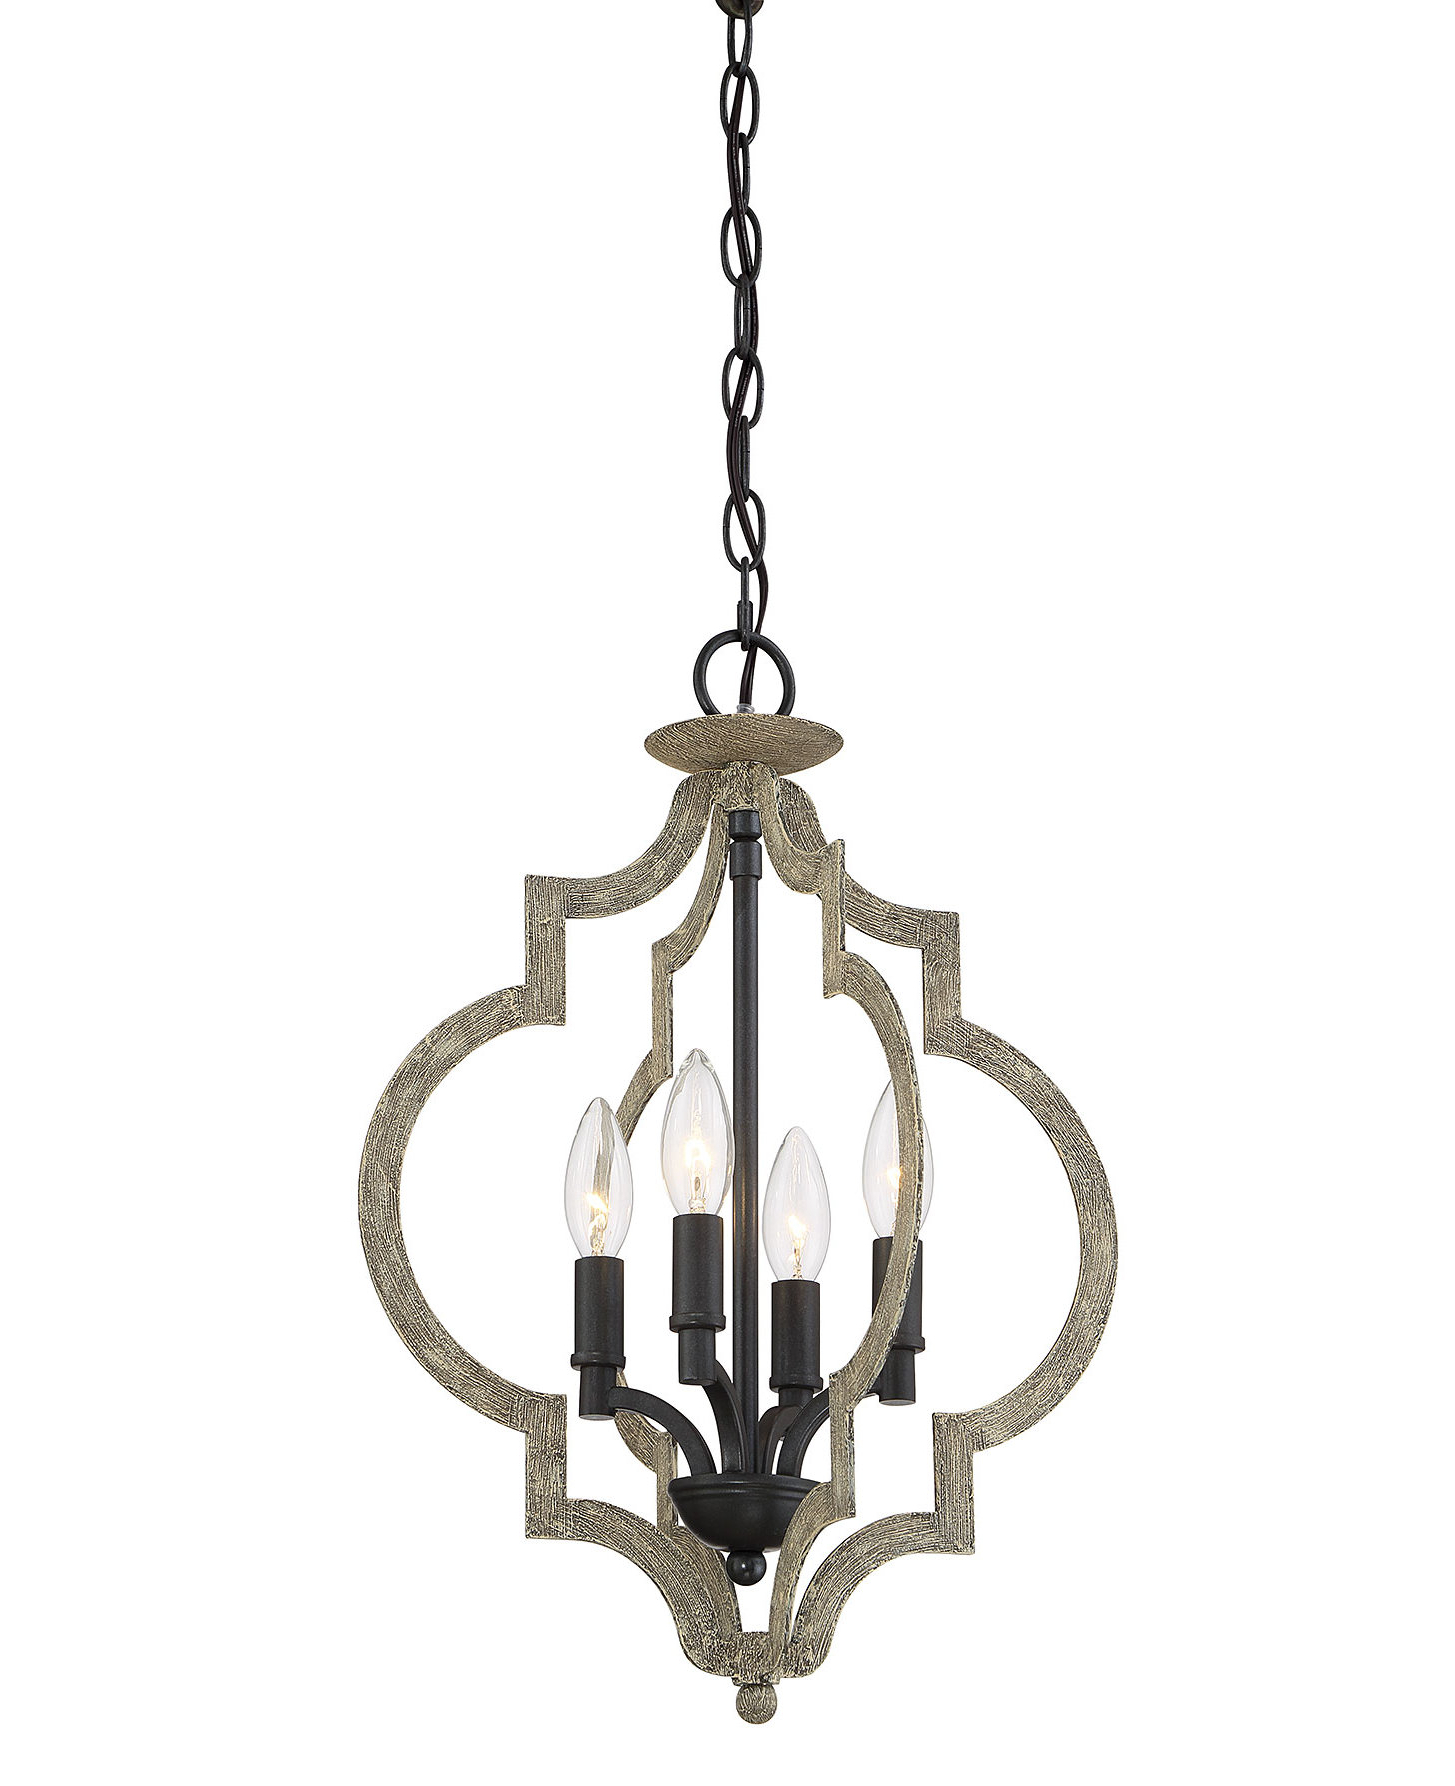 Trendy Grahm 4 Light Geometric Chandelier With Regard To Kaycee 4 Light Geometric Chandeliers (View 7 of 25)